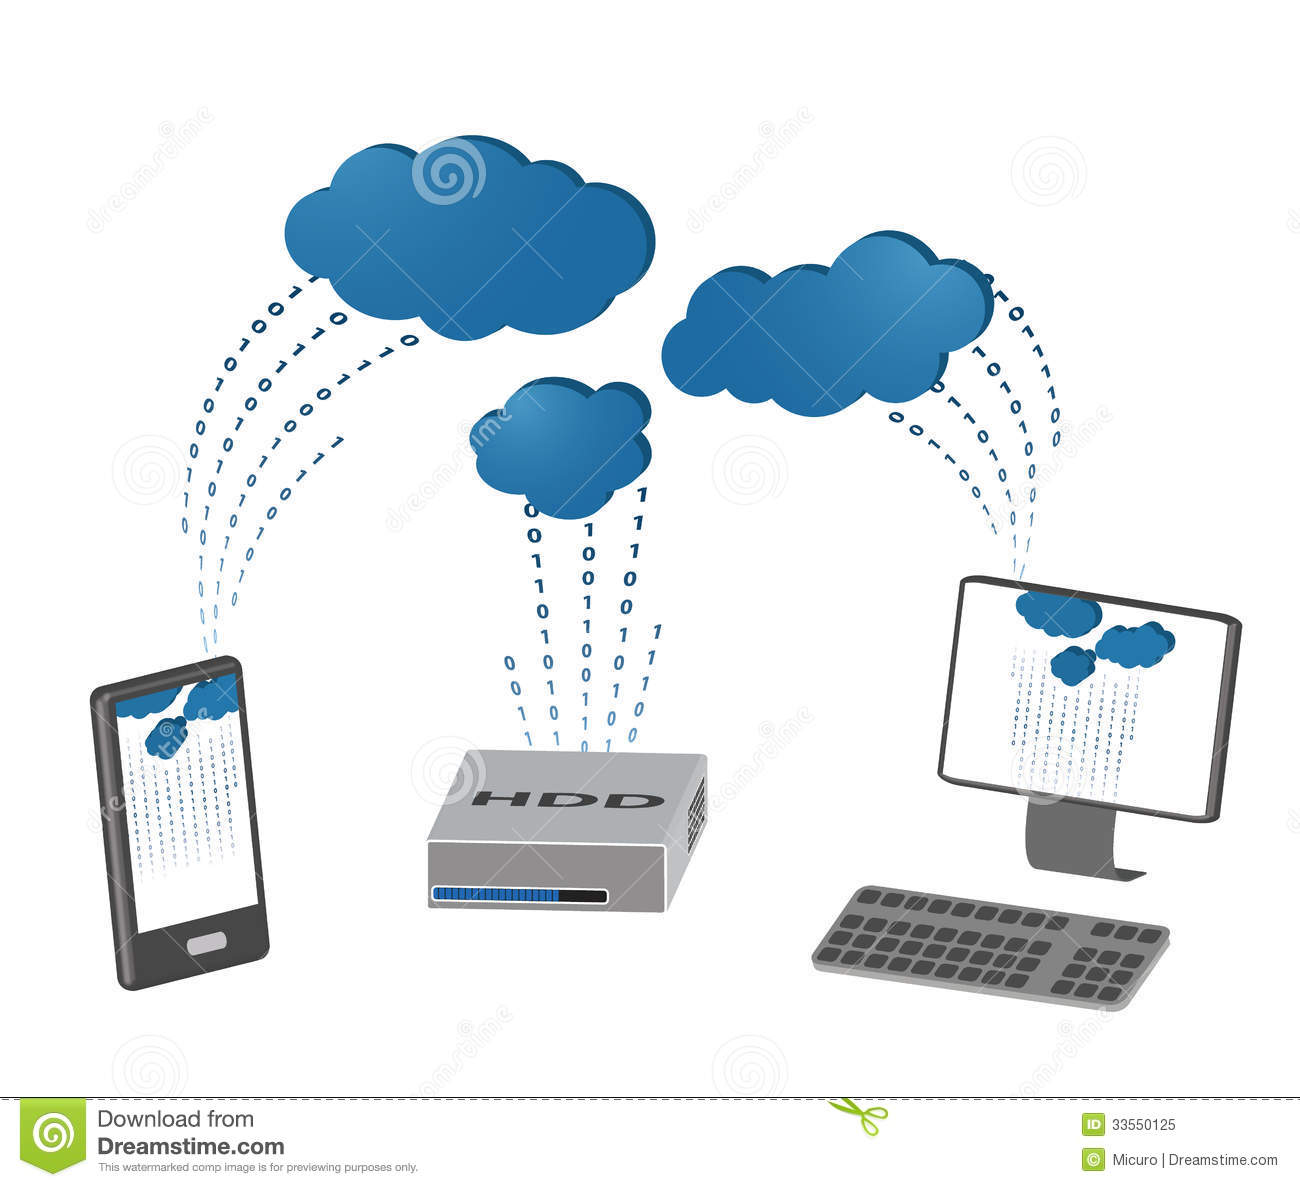 Illustration Of Cloud Service Royalty Free Stock Photo.